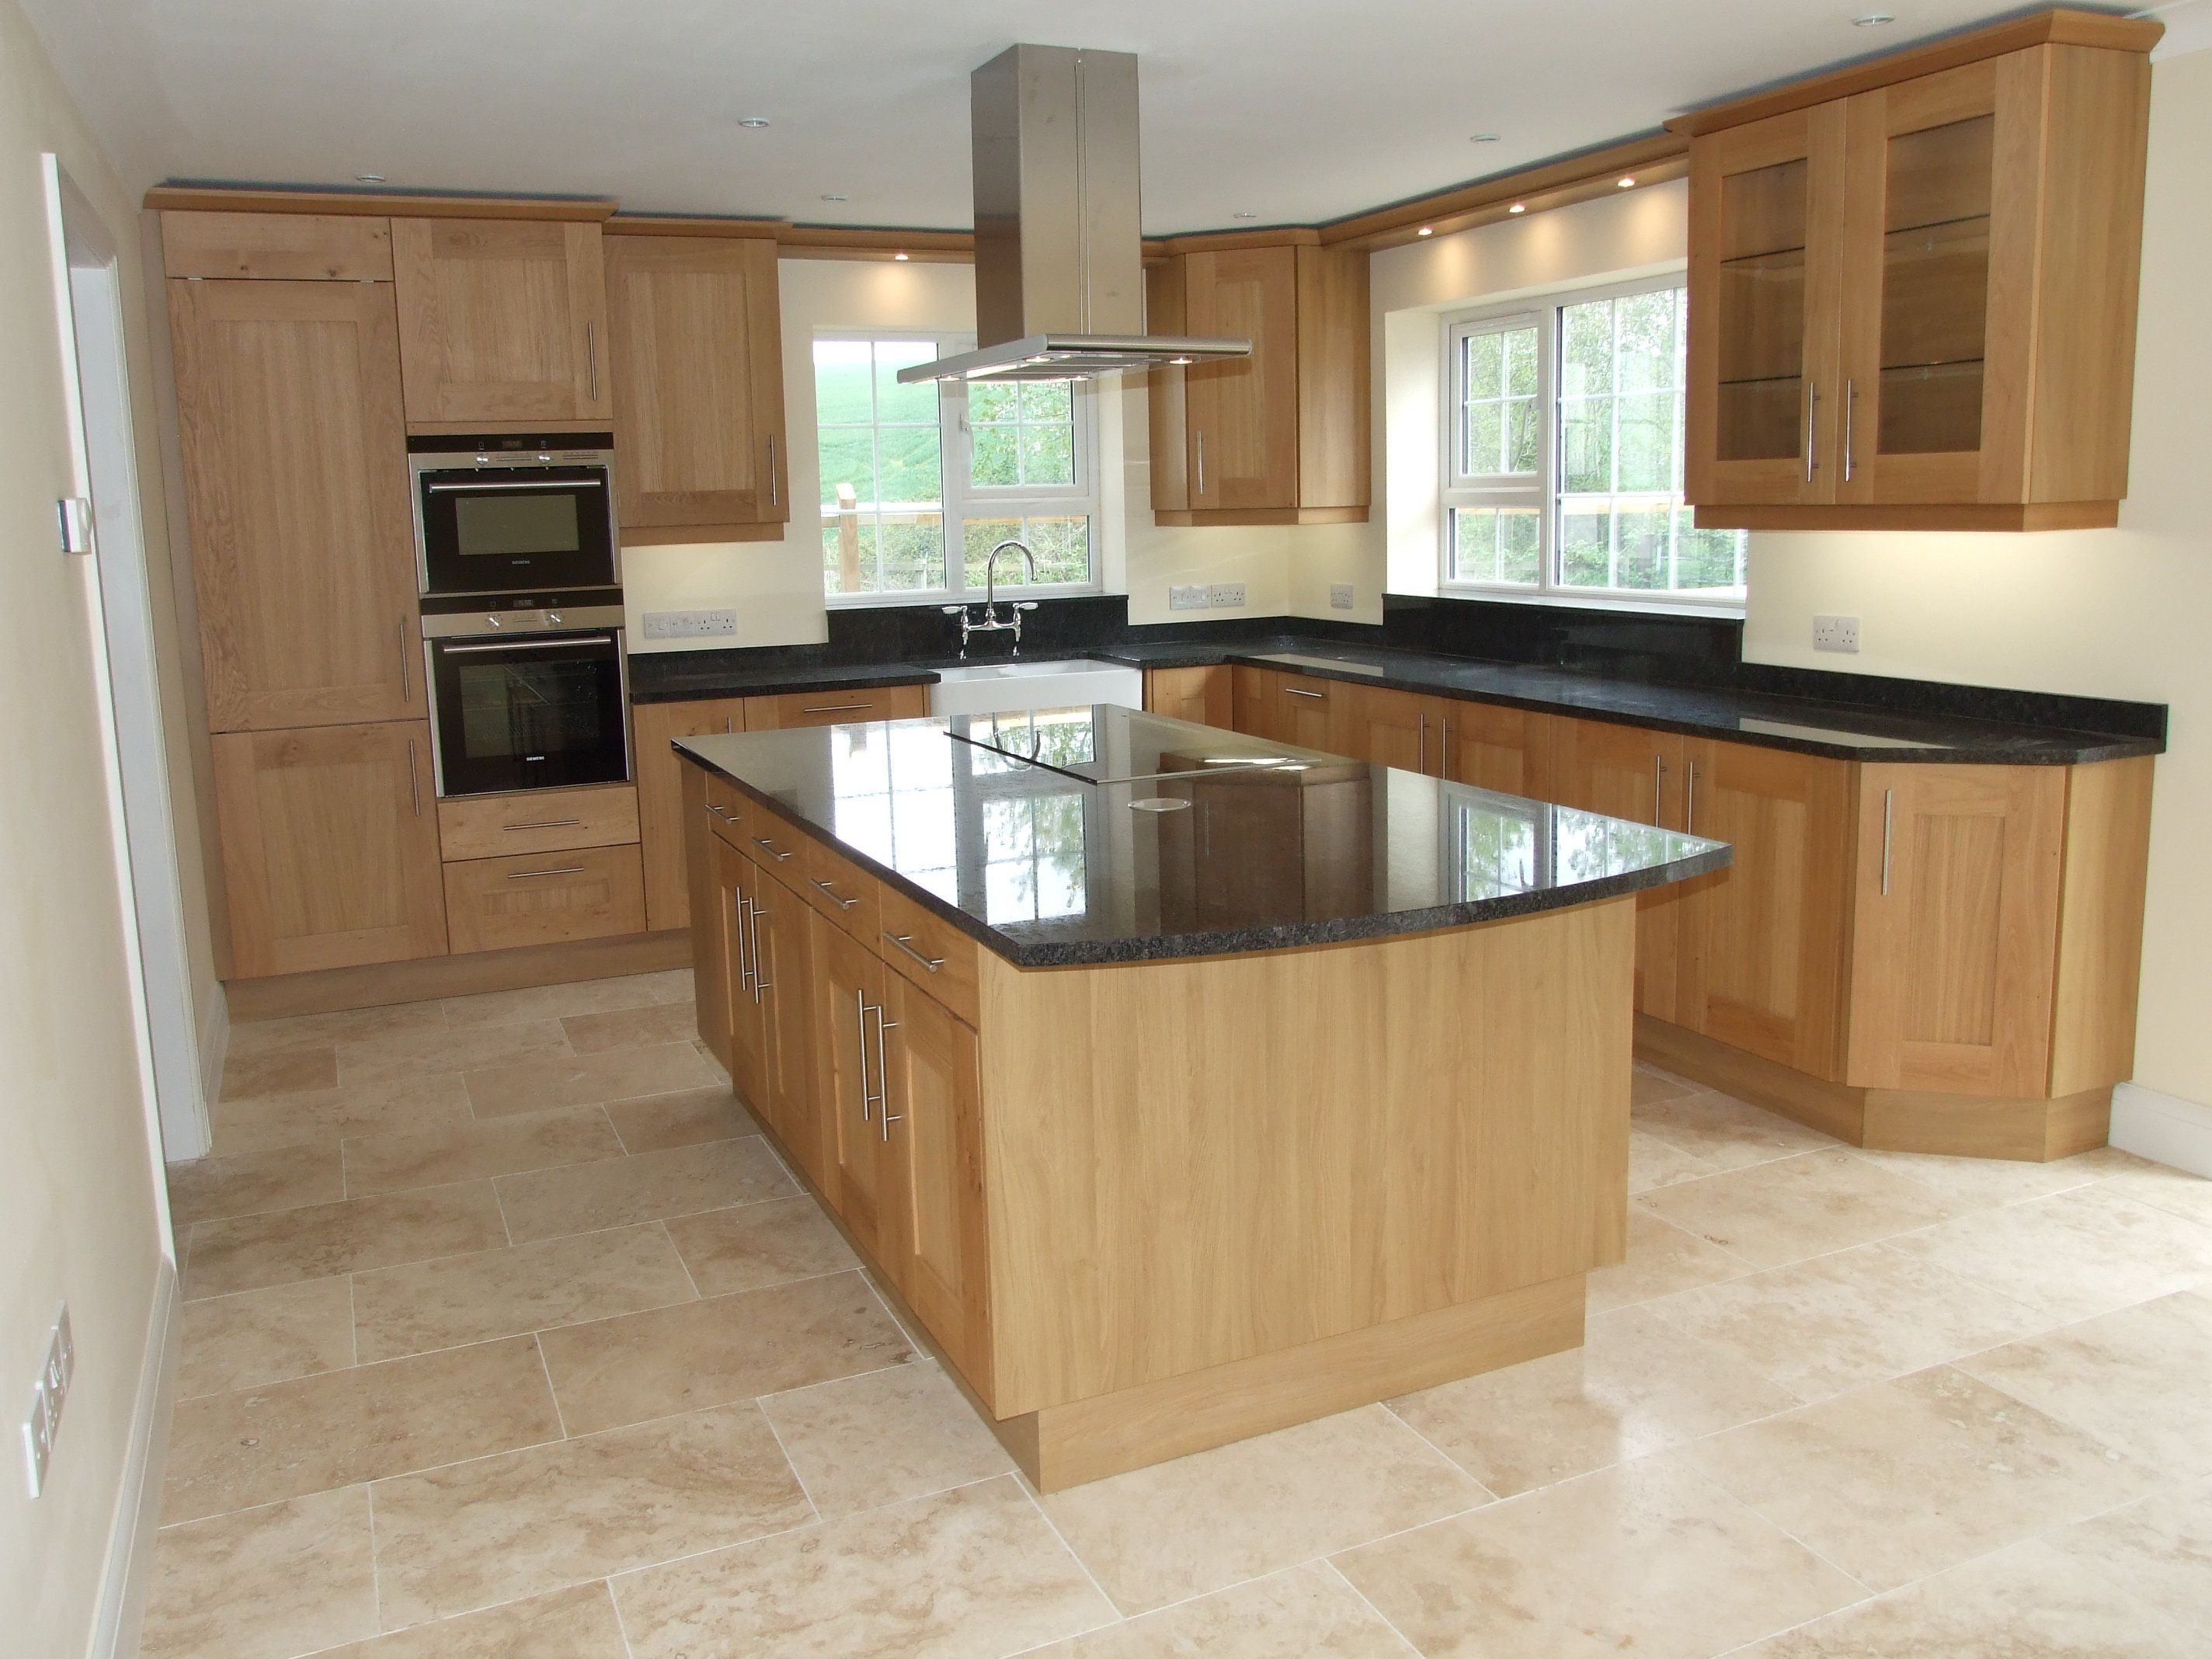 Solid Wood Kitchen doors | The Classic Range - Lacewood Designs ...